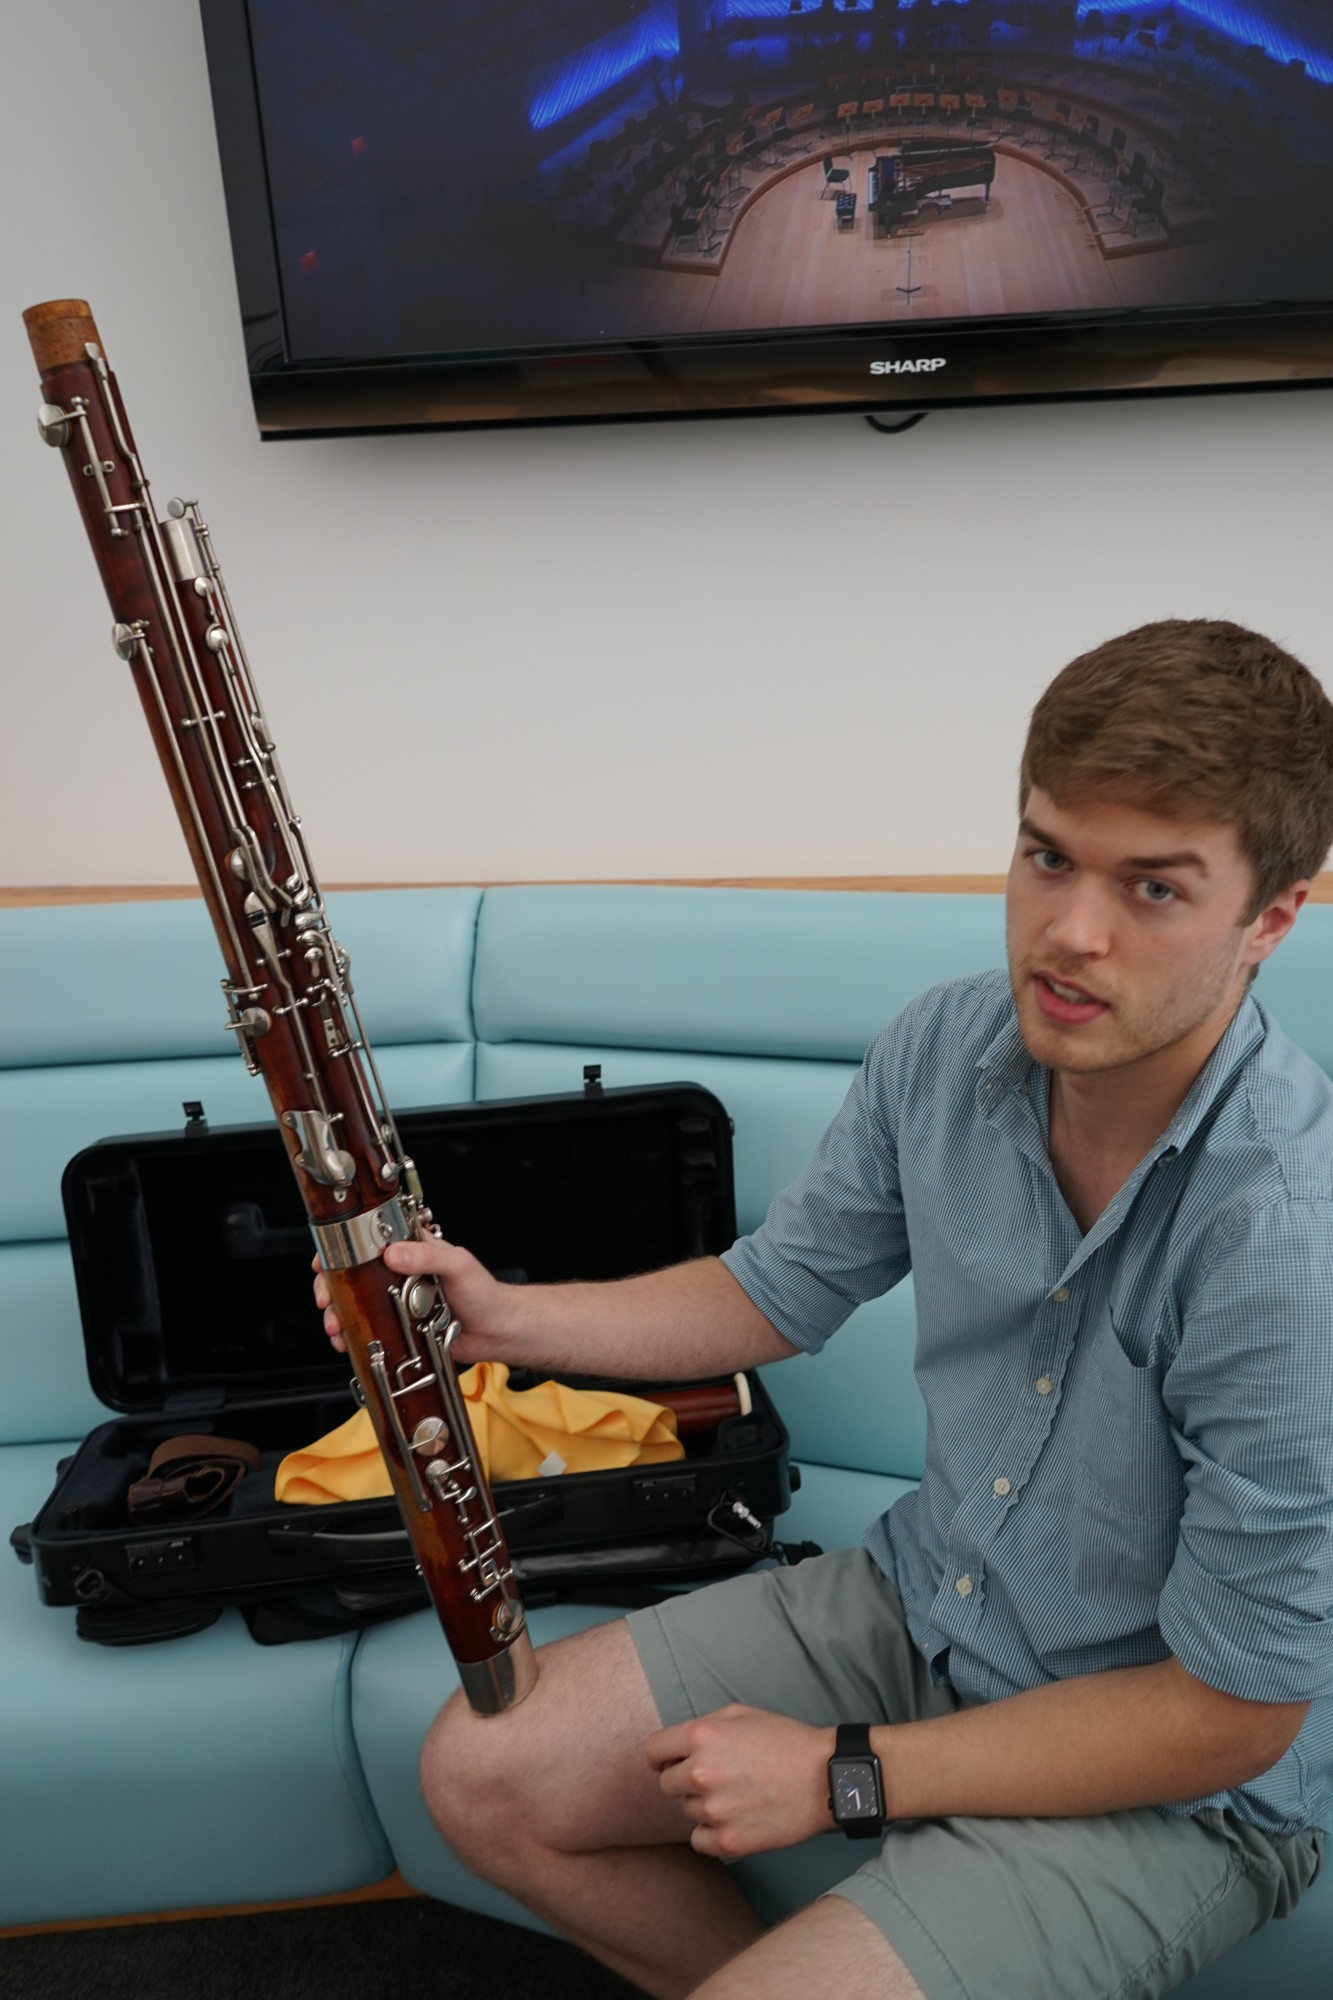 The full bassoon, minus the bocal, the mouthpiece.